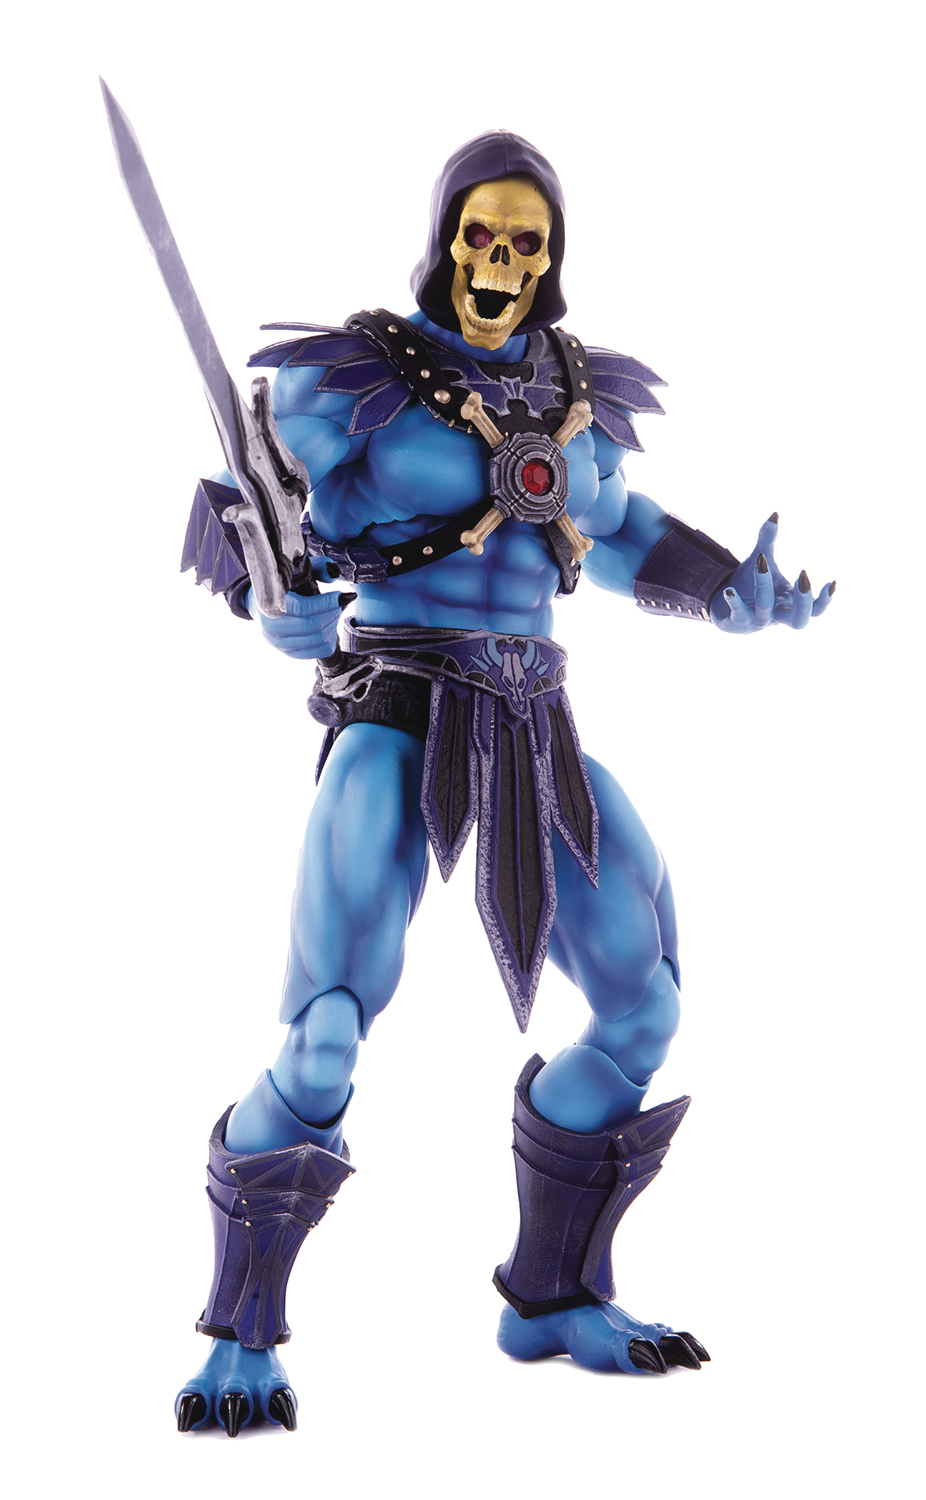 MOTU SKELETOR 1/6 SCALE COLLECTIBLE FIGURE